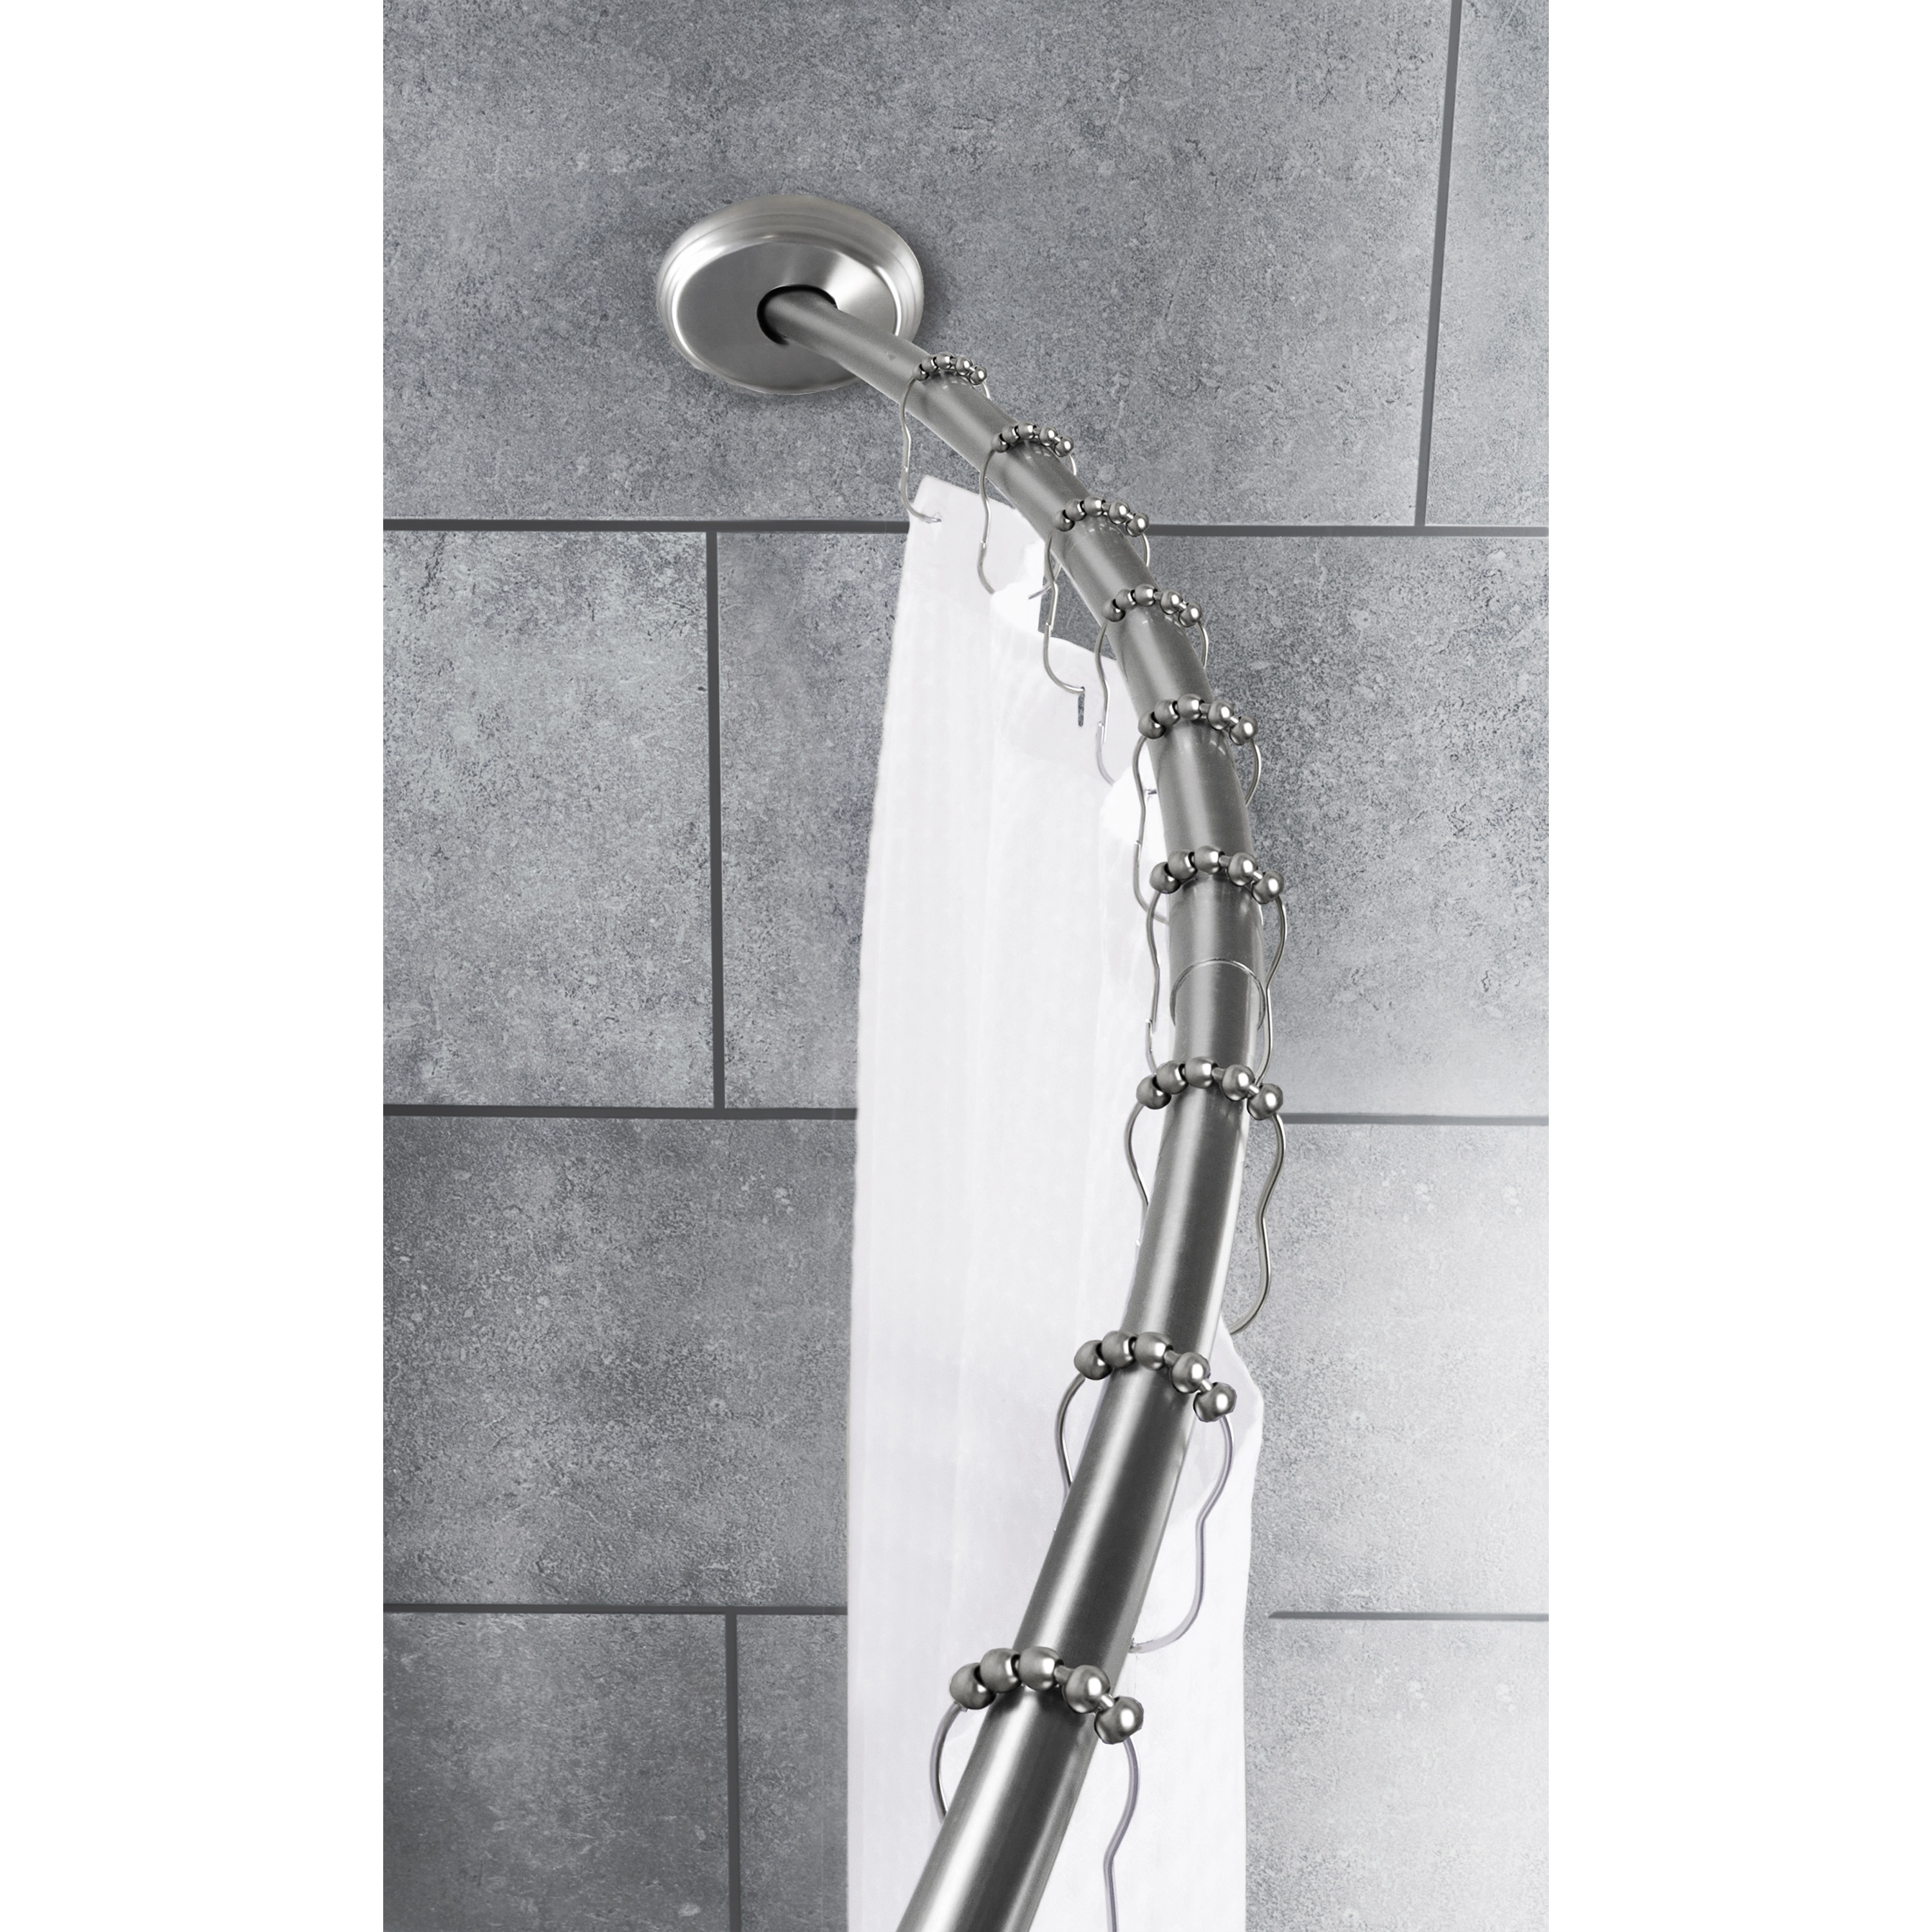 Shower Curtain Rods Find Great Shower Curtains